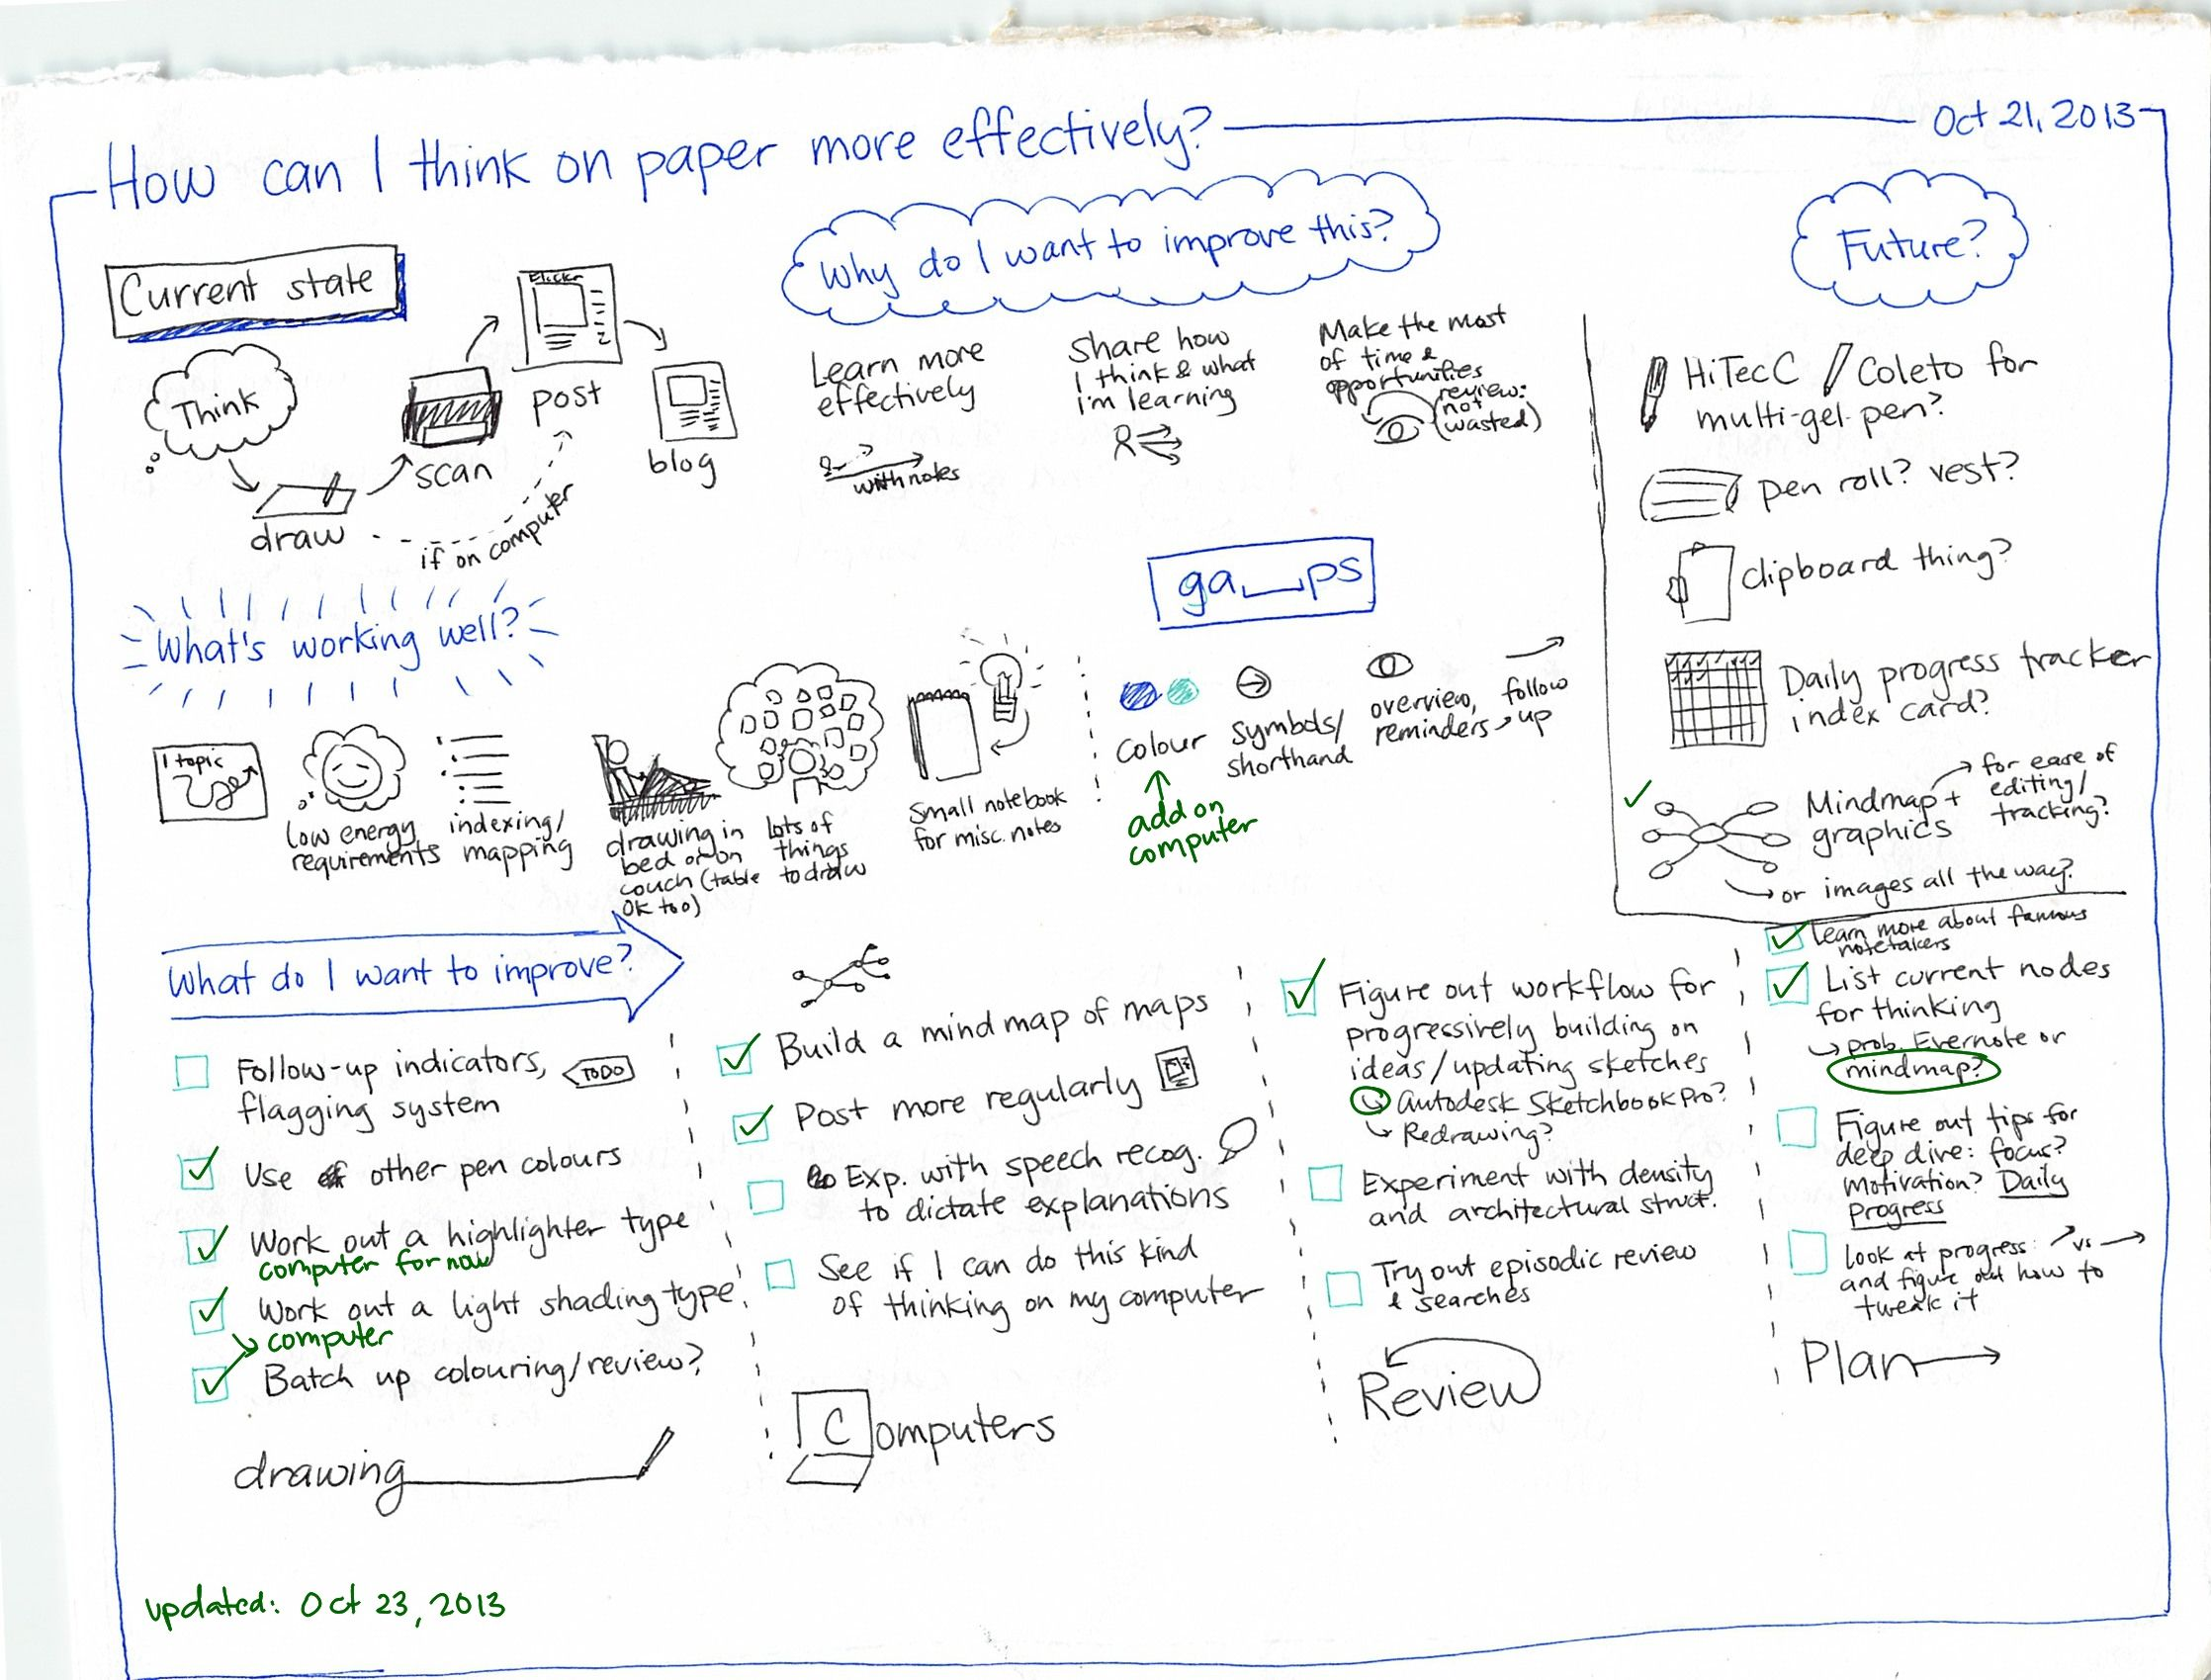 2013-10-21-How-can-I-think-on-paper-more-effectively.jpg (2236×1699)